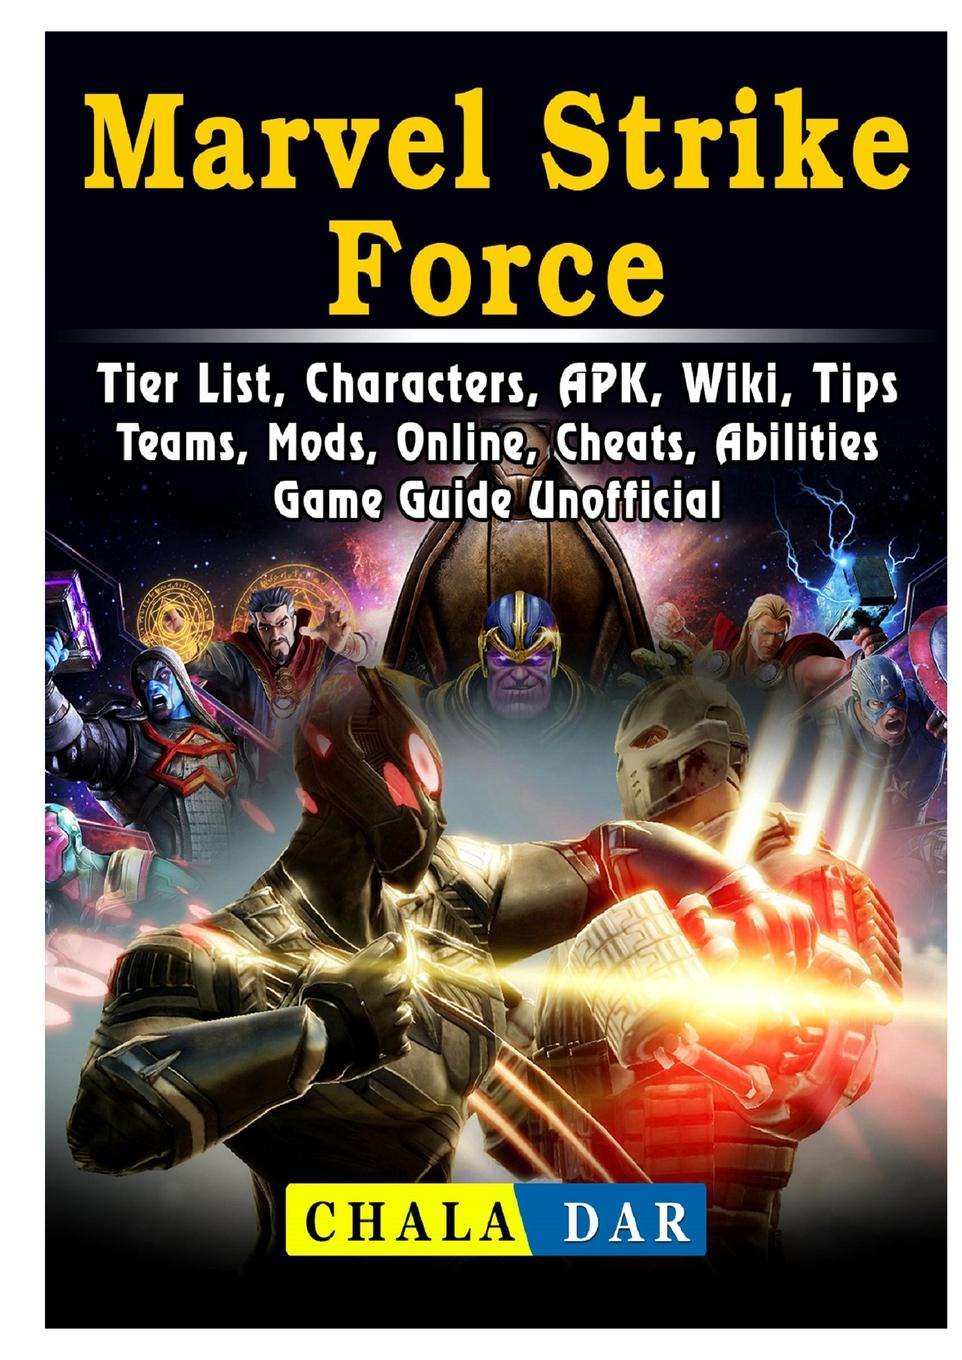 где купить Chala Dar Marvel Strike Force, Tier List, Characters, APK, Wiki, Tips, Teams, Mods, Online, Cheats, Abilities, Game Guide Unofficial по лучшей цене